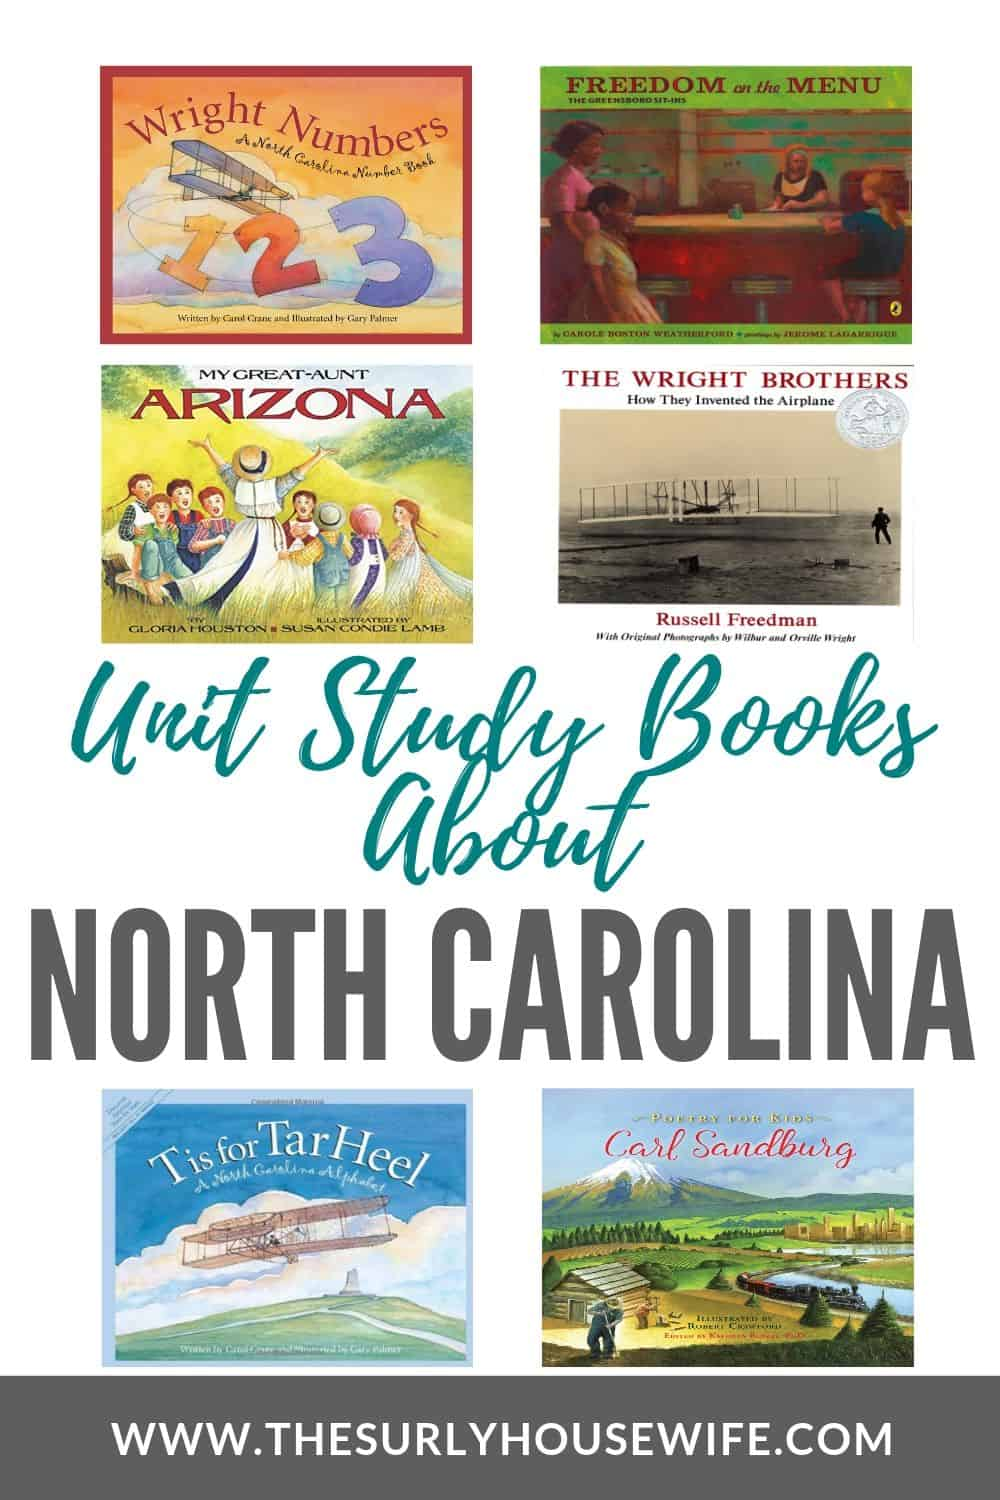 Searching for books about North Carolina, then check out this post! It contains children's books, chapter books, and picture books about the Tar Heel State! From the Biltmore to the Outer Banks, and from the Wright Brothers to Greensboro plan your unit study about North Carolina today!